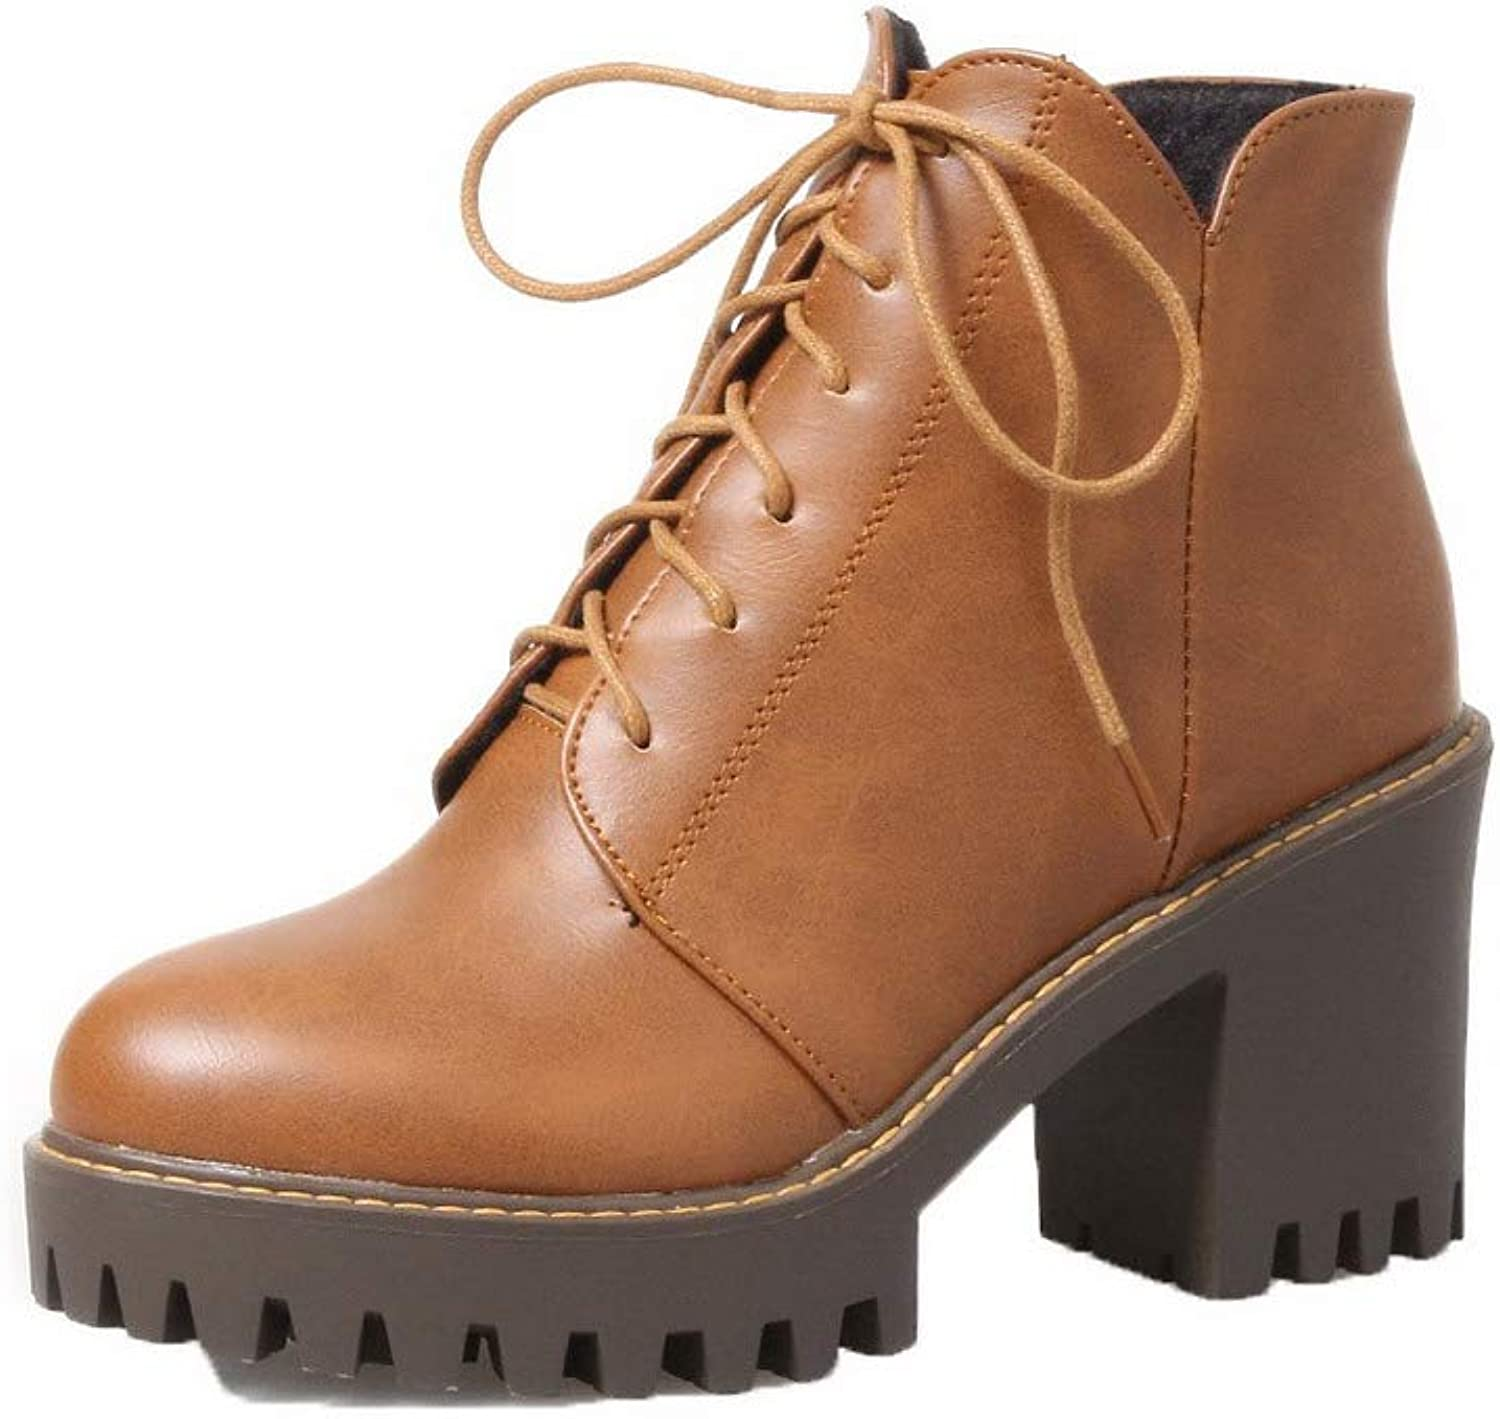 WeiPoot Women's Pu Closed-Toe Solid Low-Top High-Heels Boots, EGHXH127221